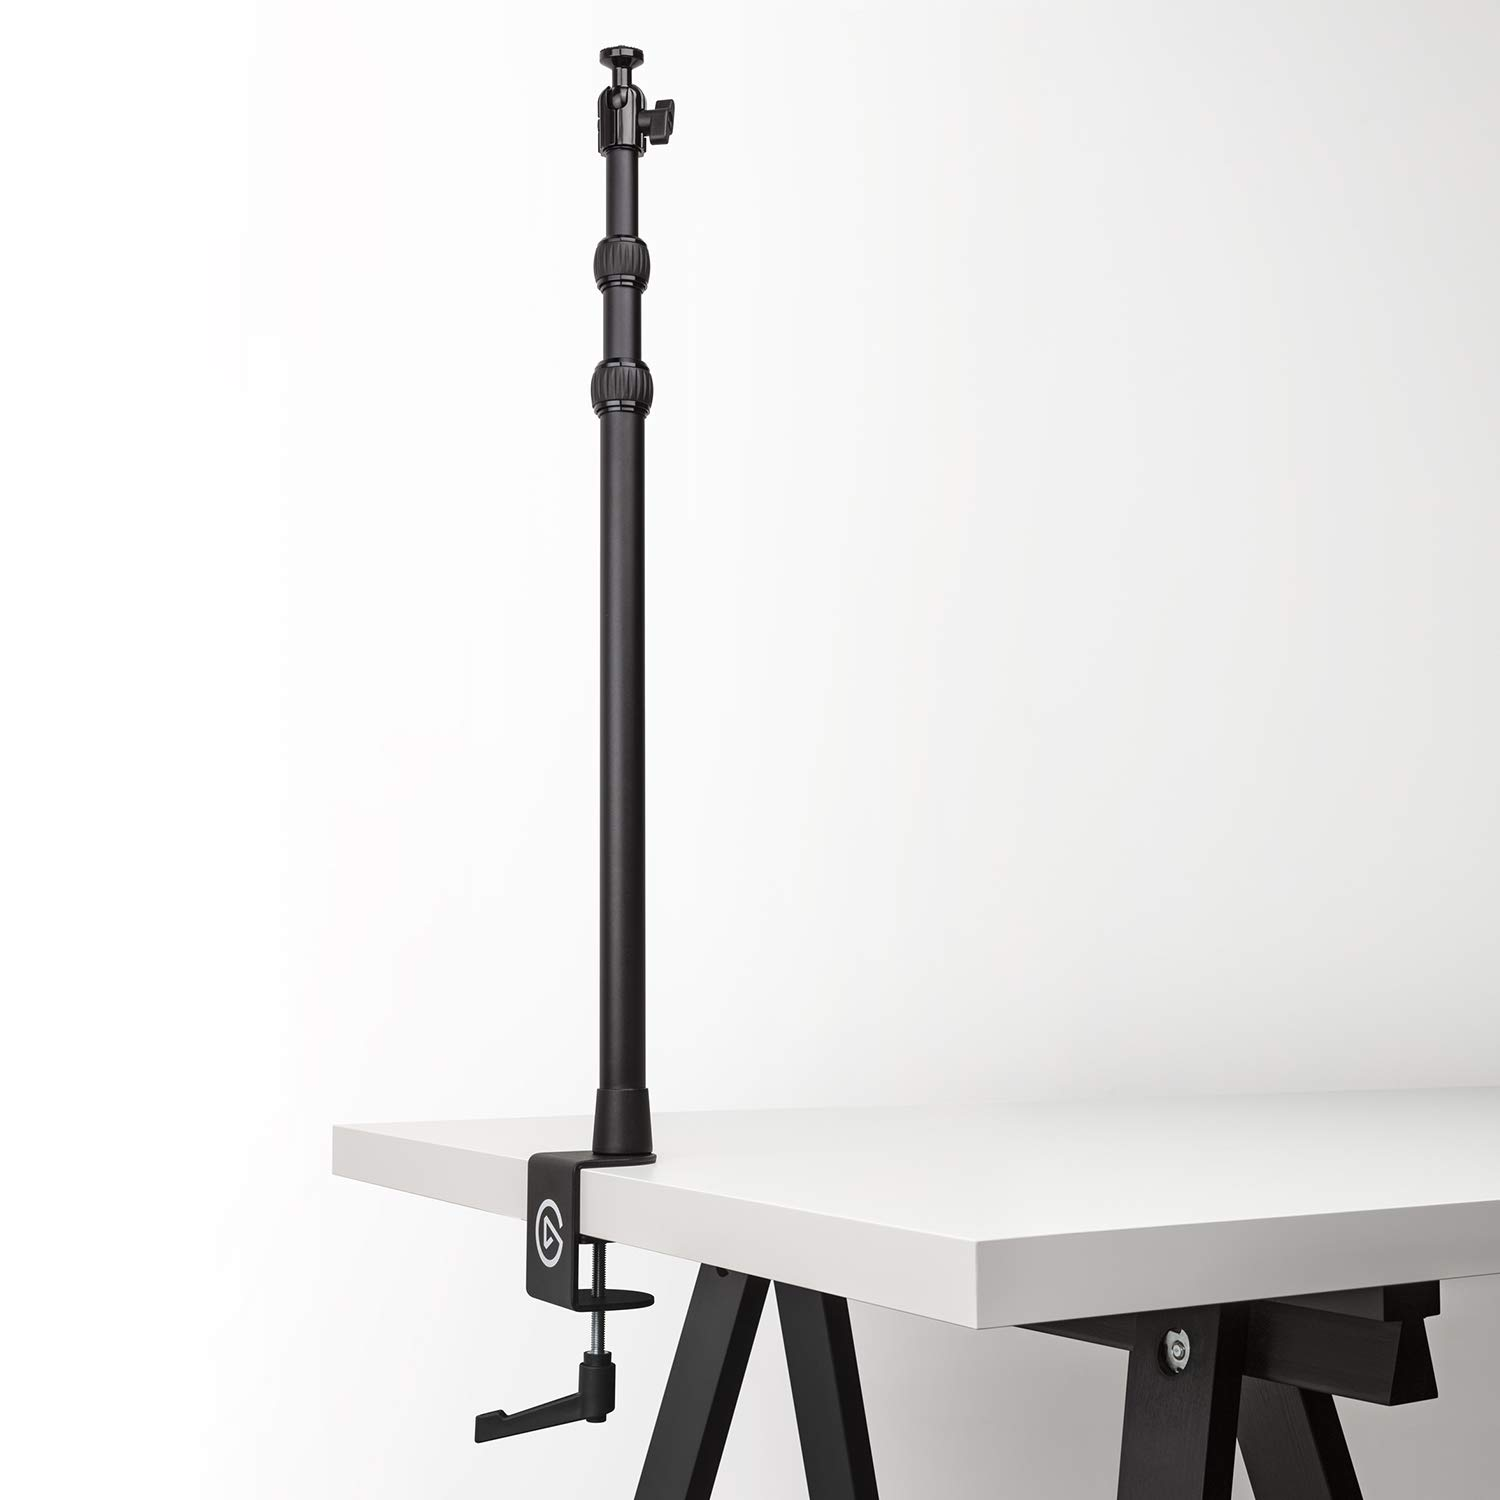 """Elgato Master Mount L, Extendable Up to 125 CM/ 49 Inches, Center Ball Head, 1/4"""" Screw, Padded Desk Clamp, Compatible with All Elgato Master Mount Accessories"""